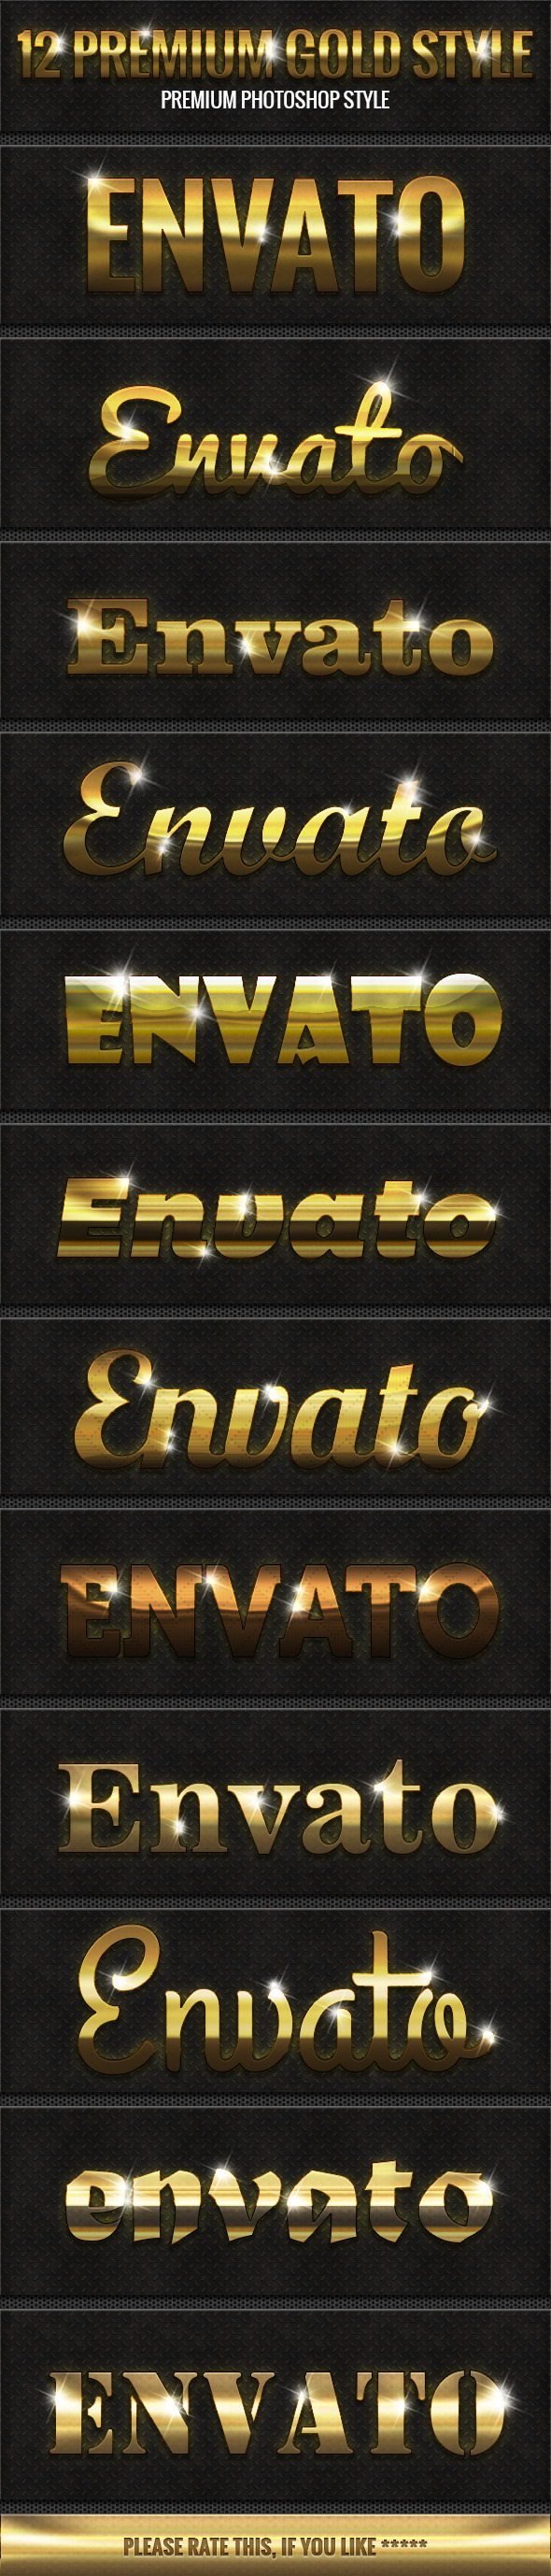 12 Premium Gold Style - Text Effects Styles